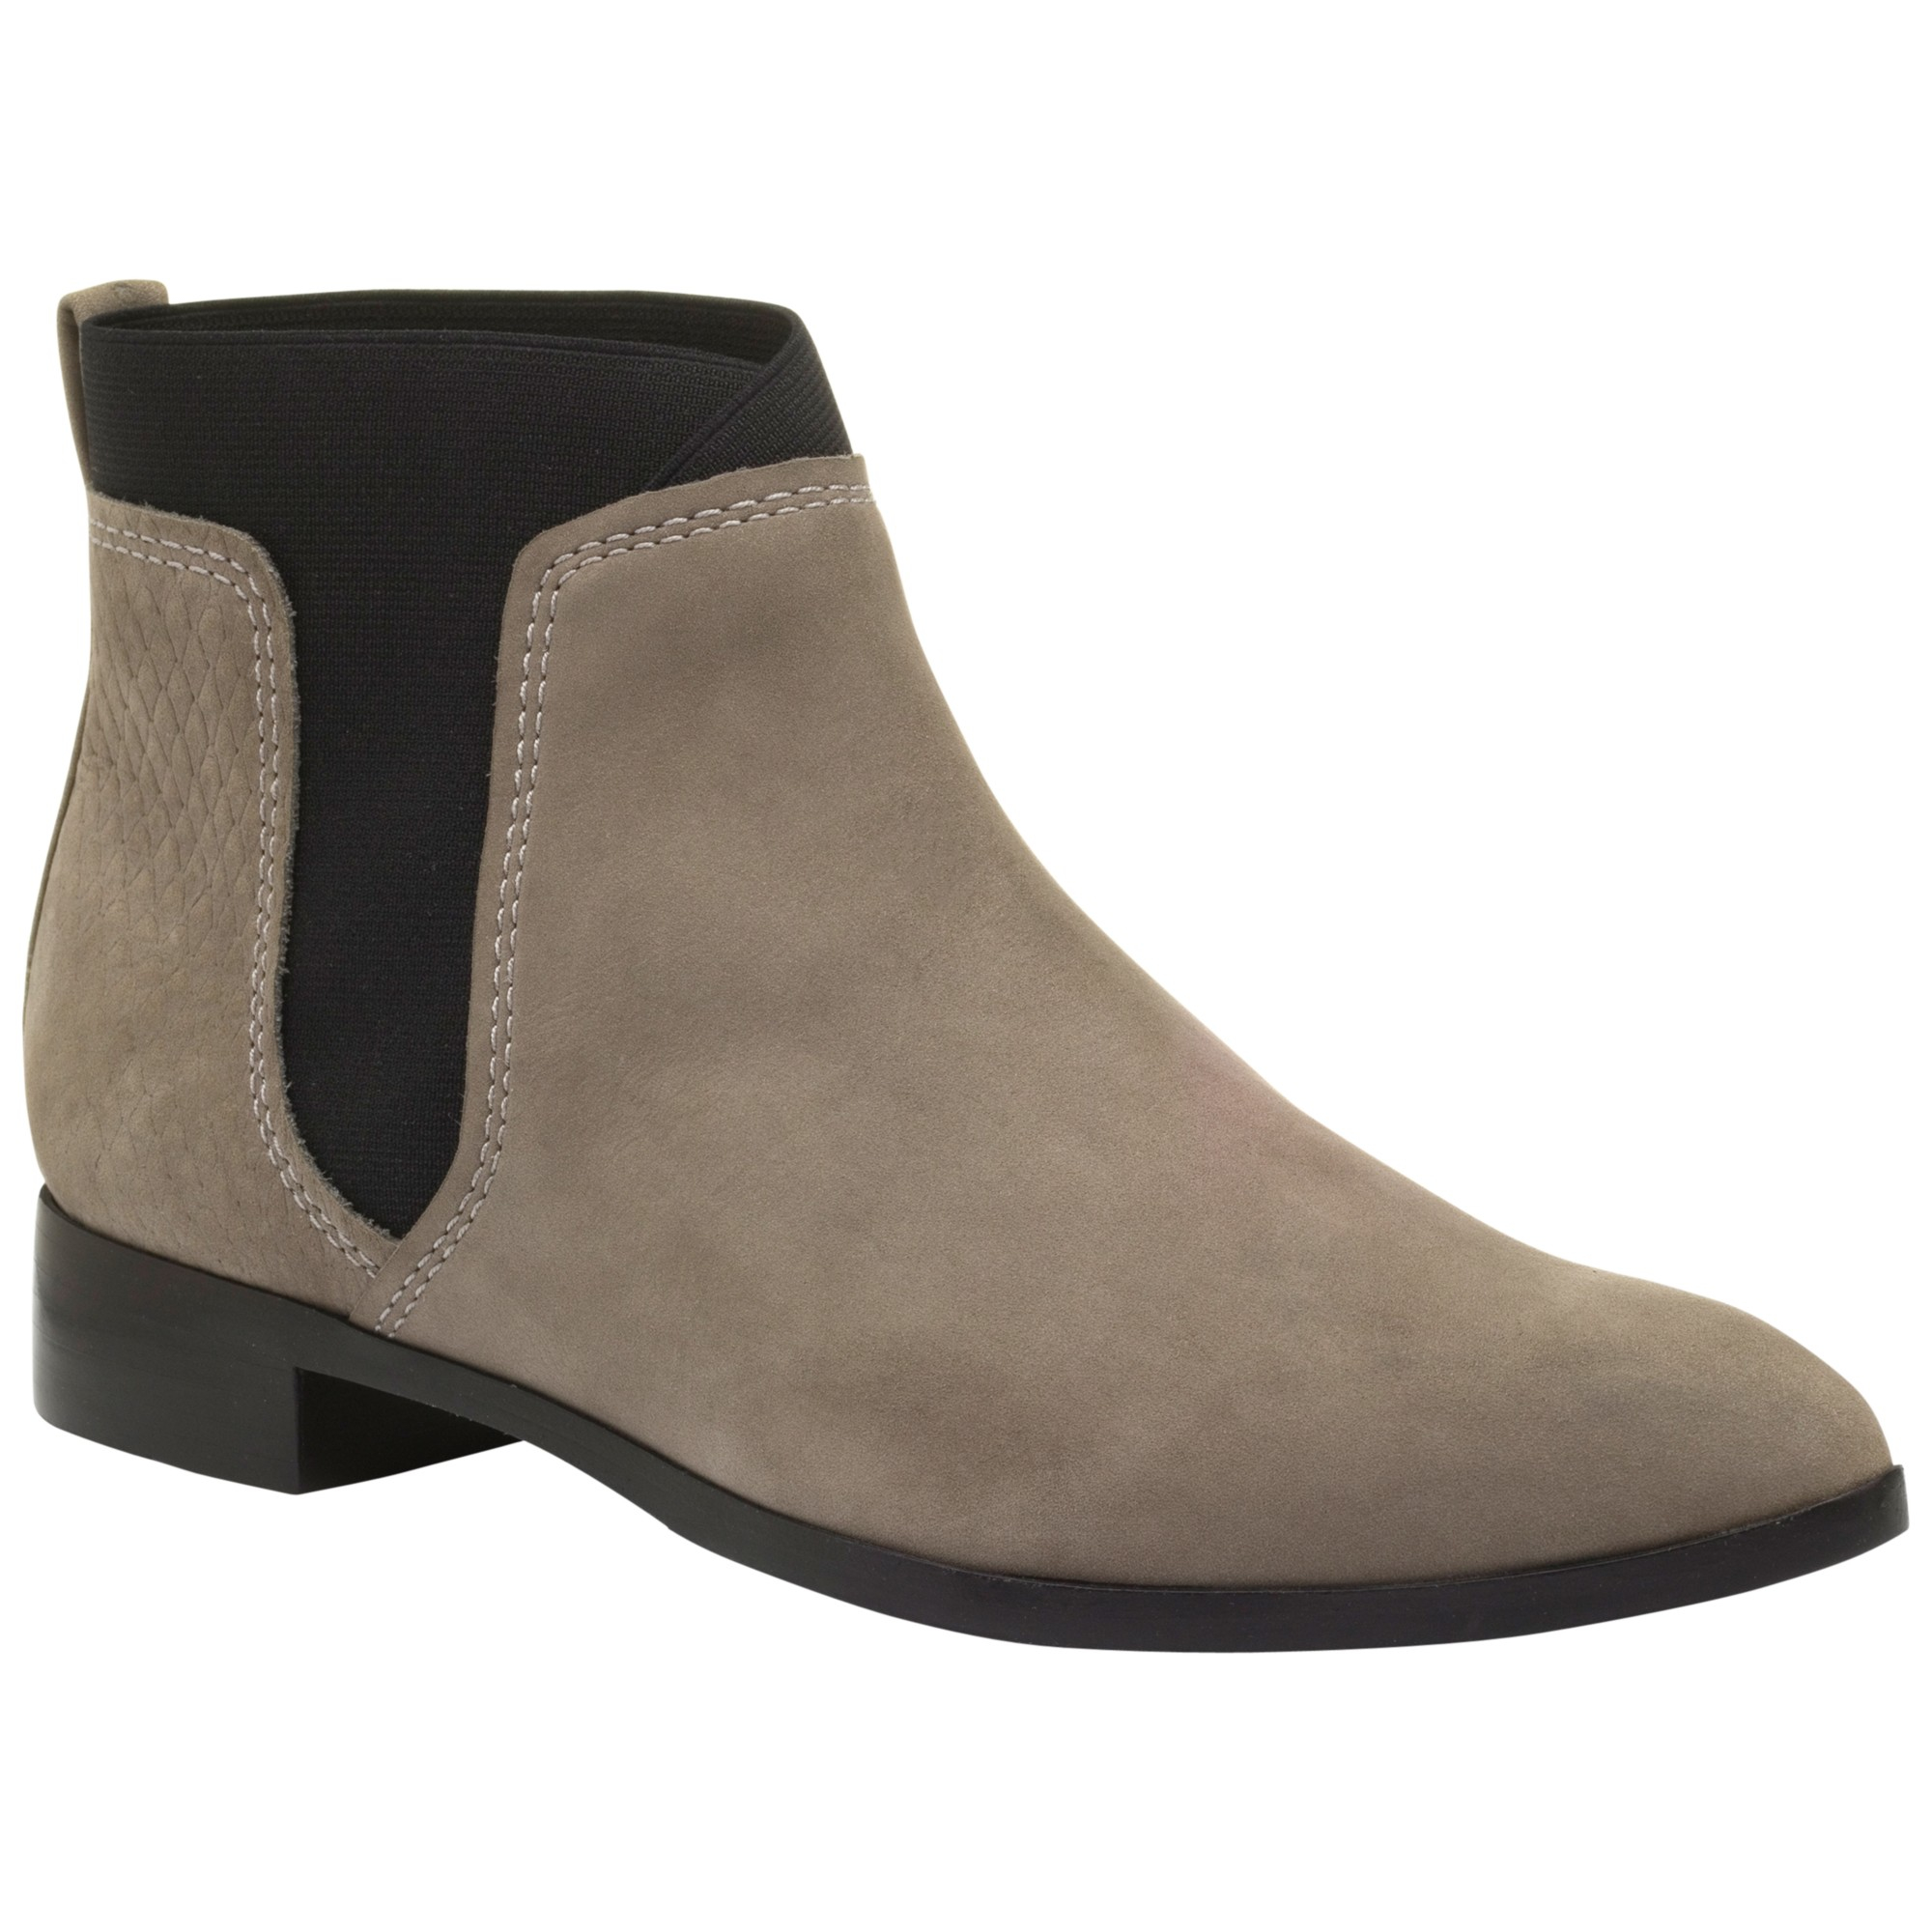 Womens Makin Chelsea Boots Ted Baker